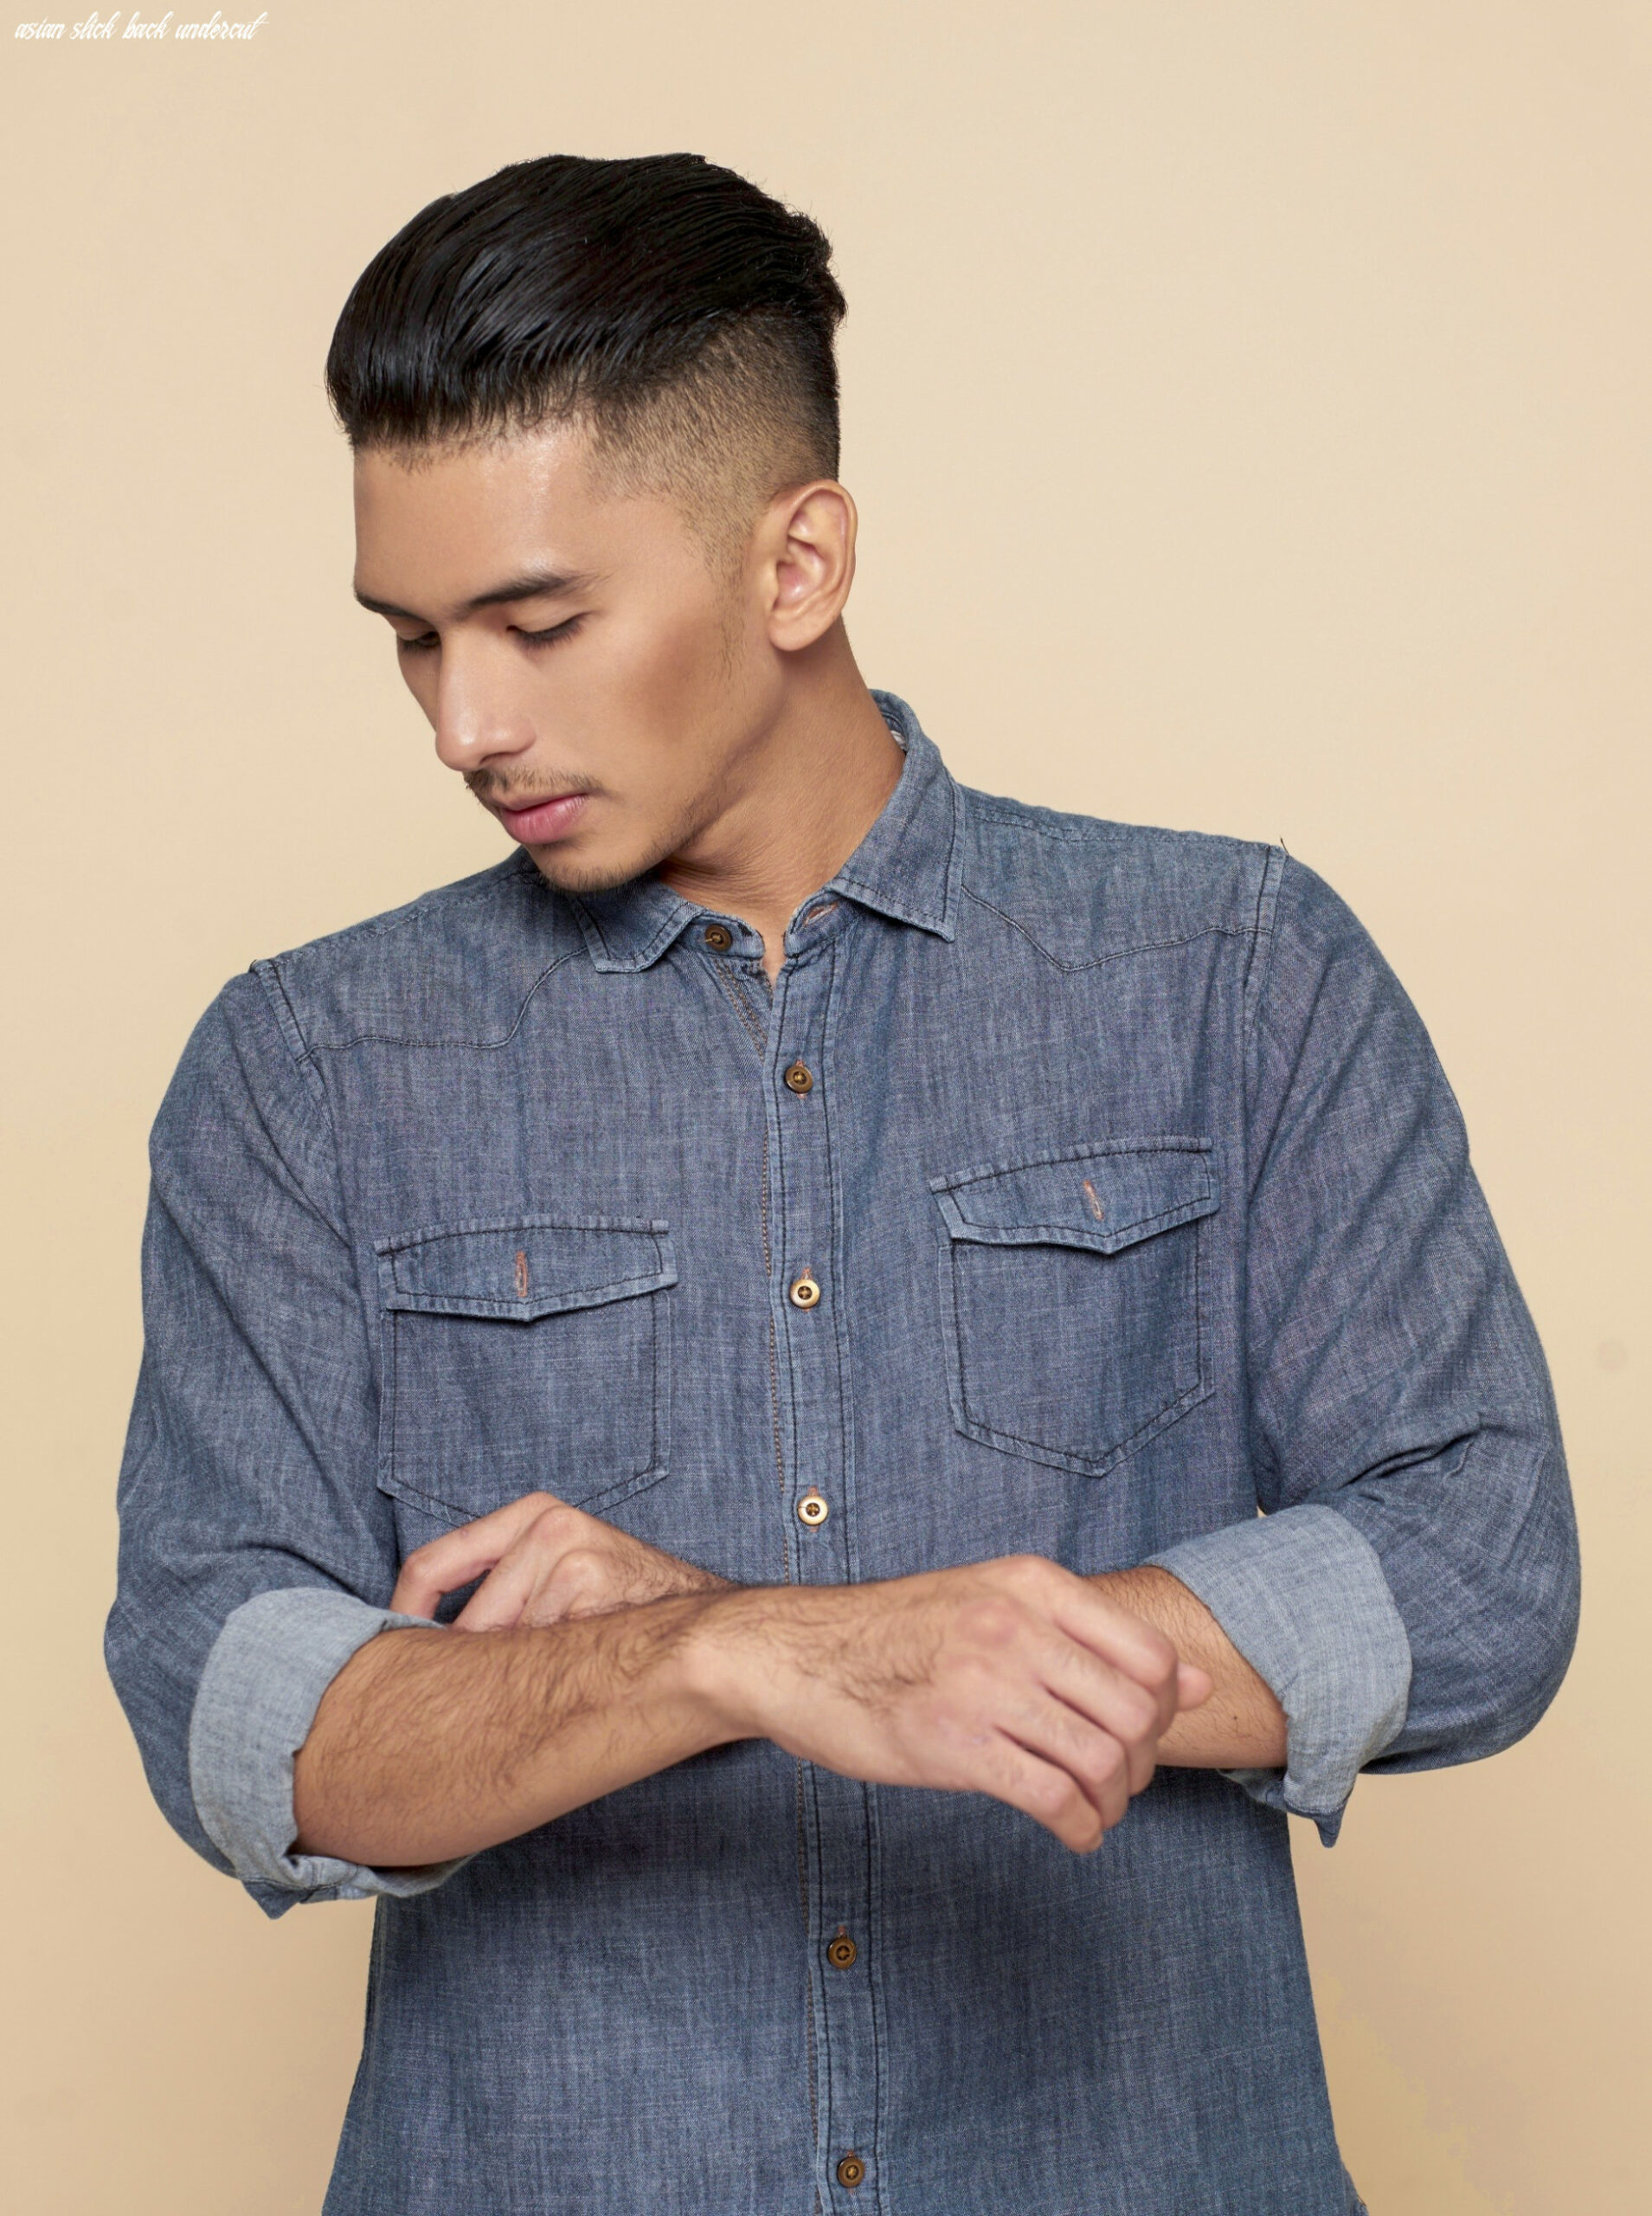 Undercut Hairstyles That Are Perfect for Pinoy Men | All Things ...